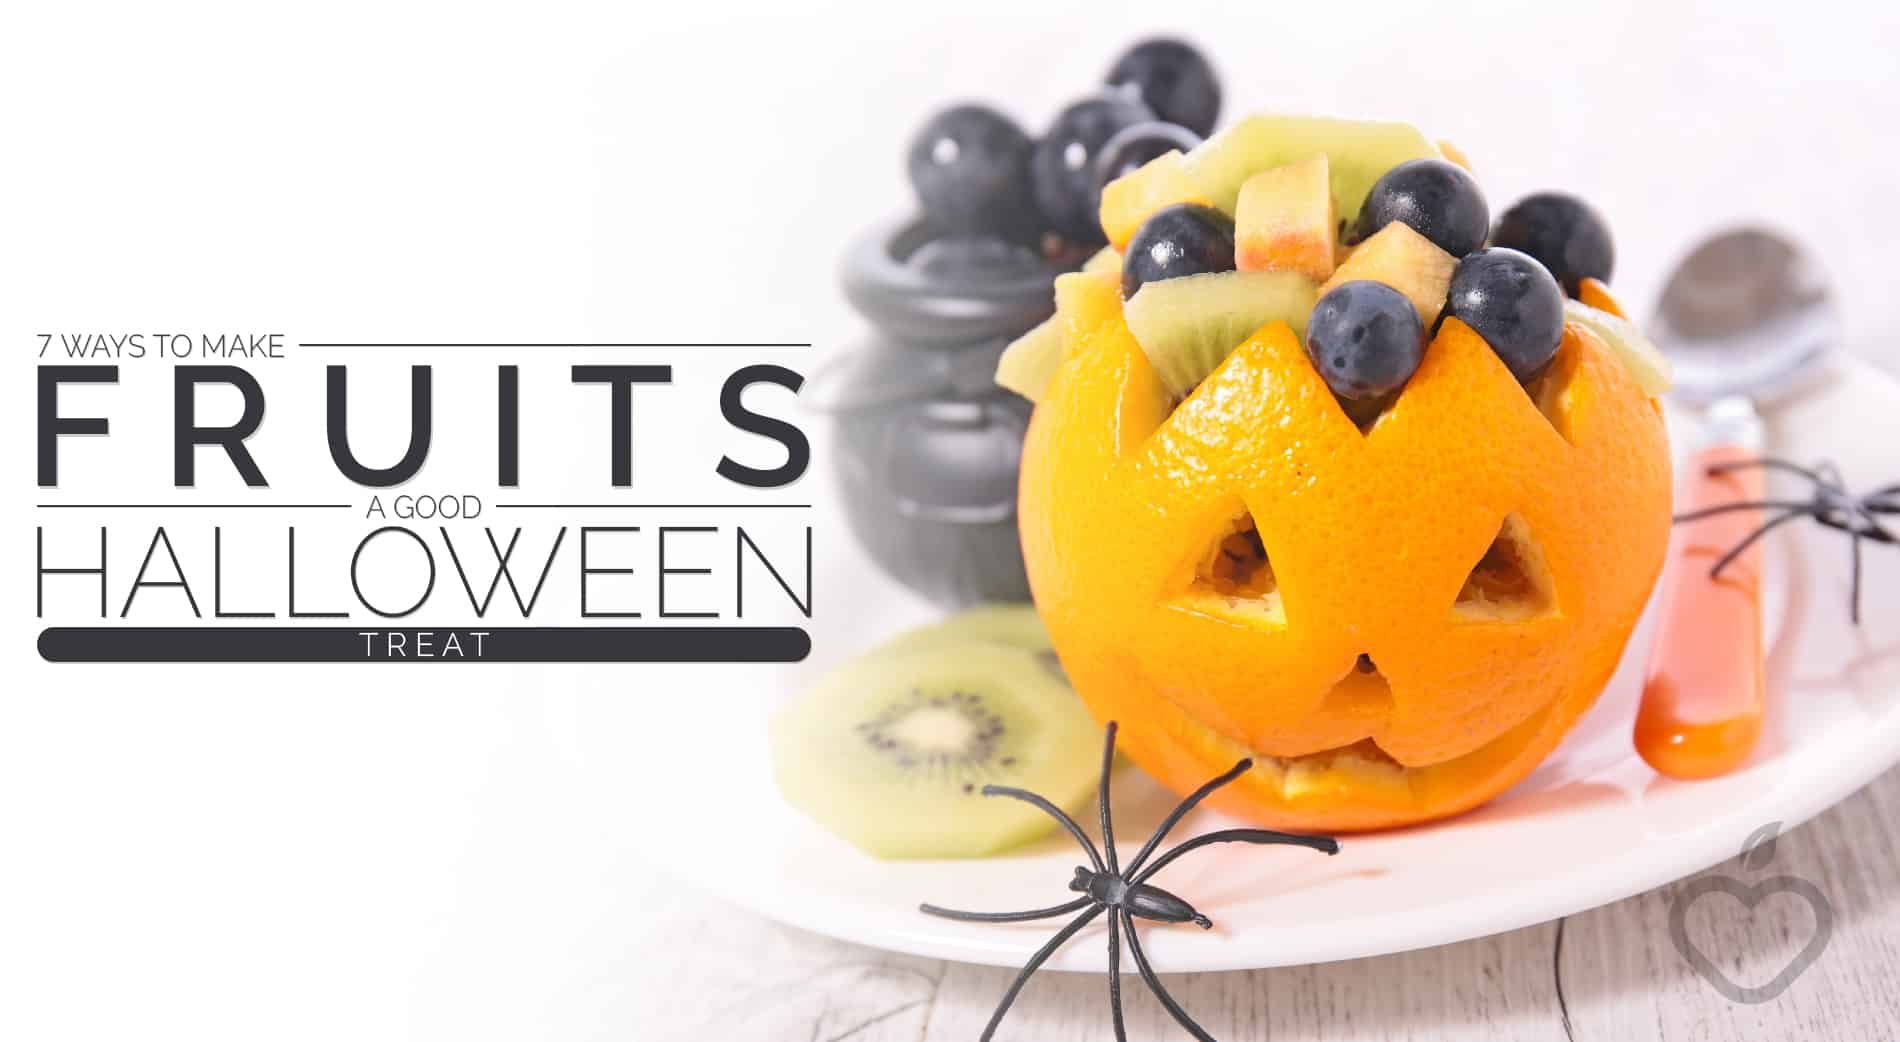 Fruits Image Design 1 - 7 Ways To Make Fruits A Good Halloween Treat